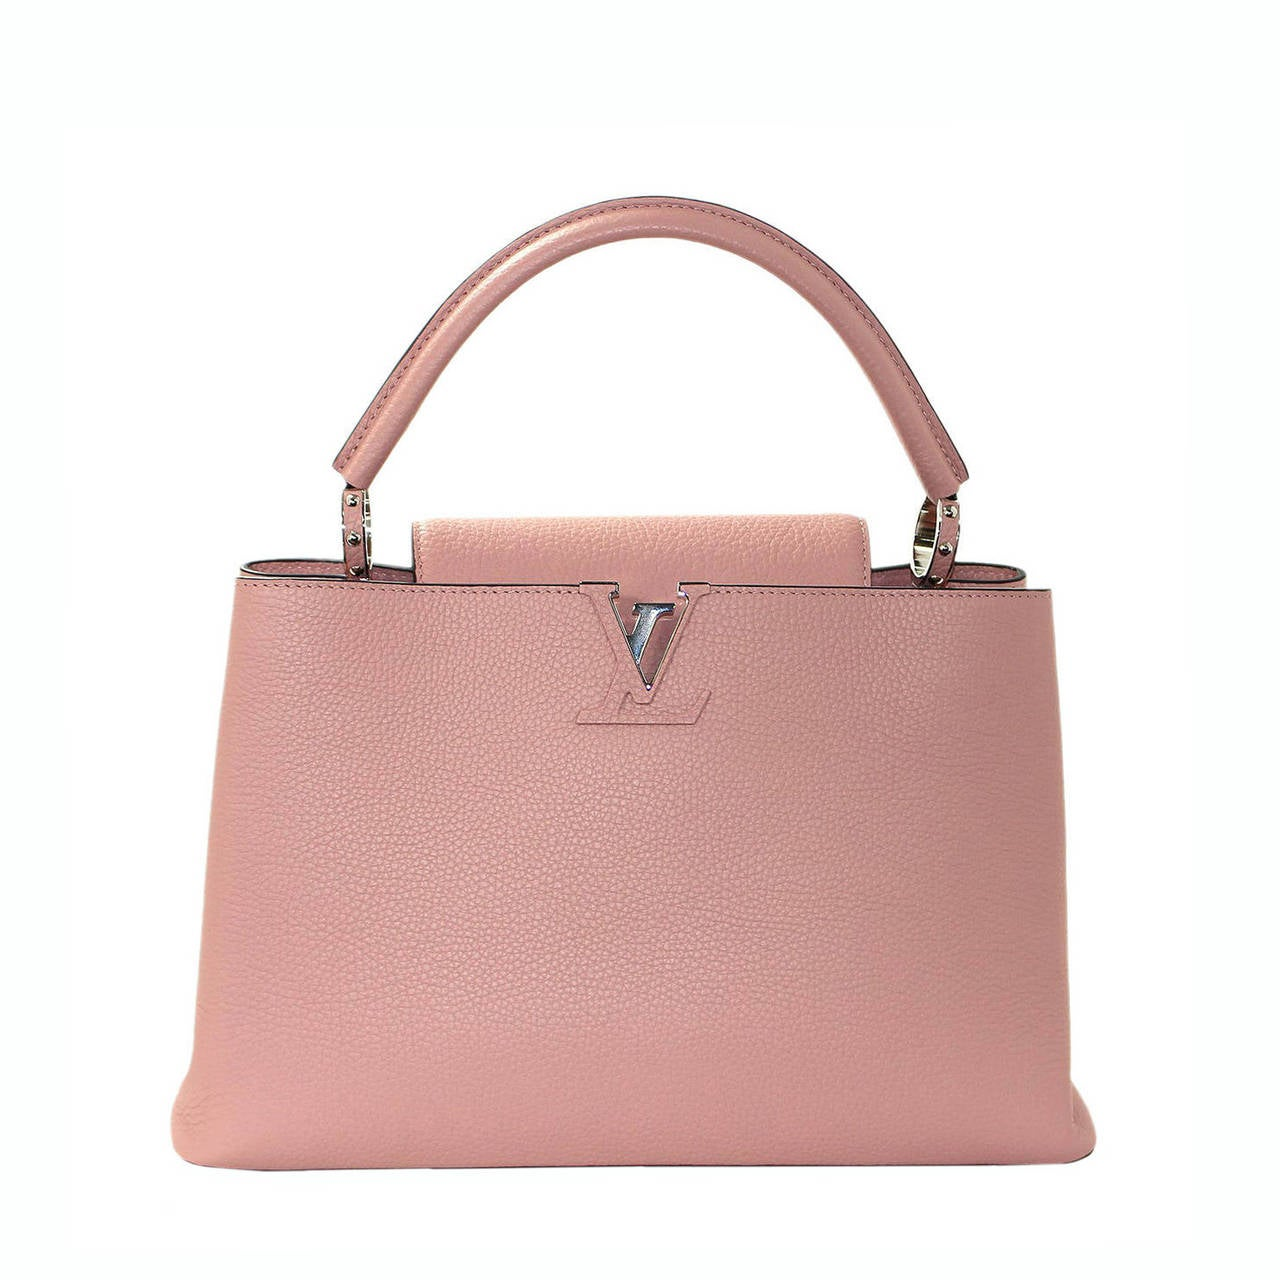 Louis Vuitton  Magnolia Leather Capucines MM Bag- PINK color 1